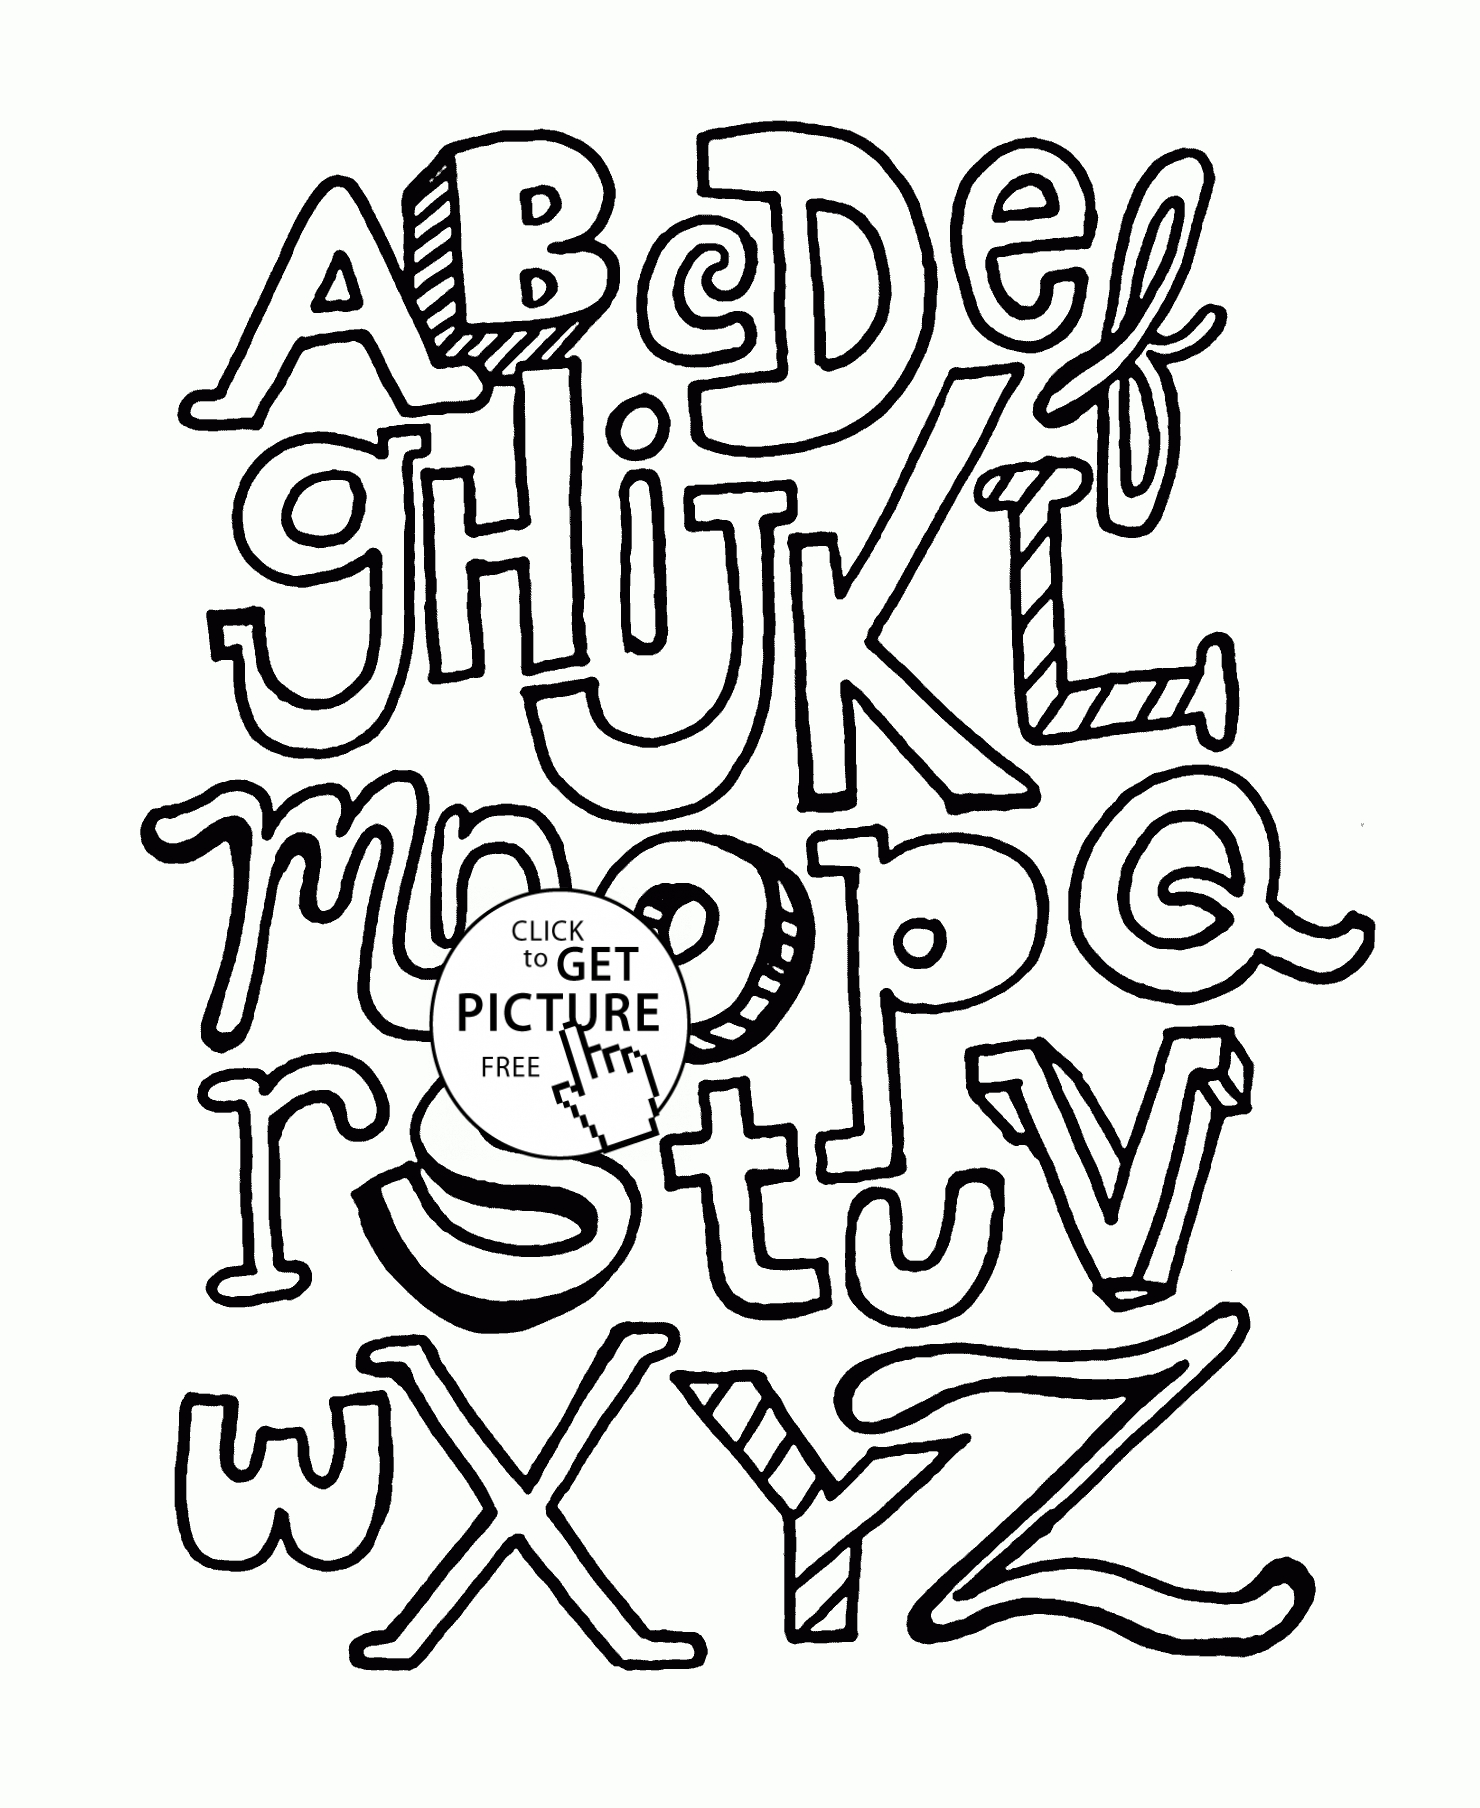 Abc Coloring Pages - alphabet coloring pages for kids abc letters printables free